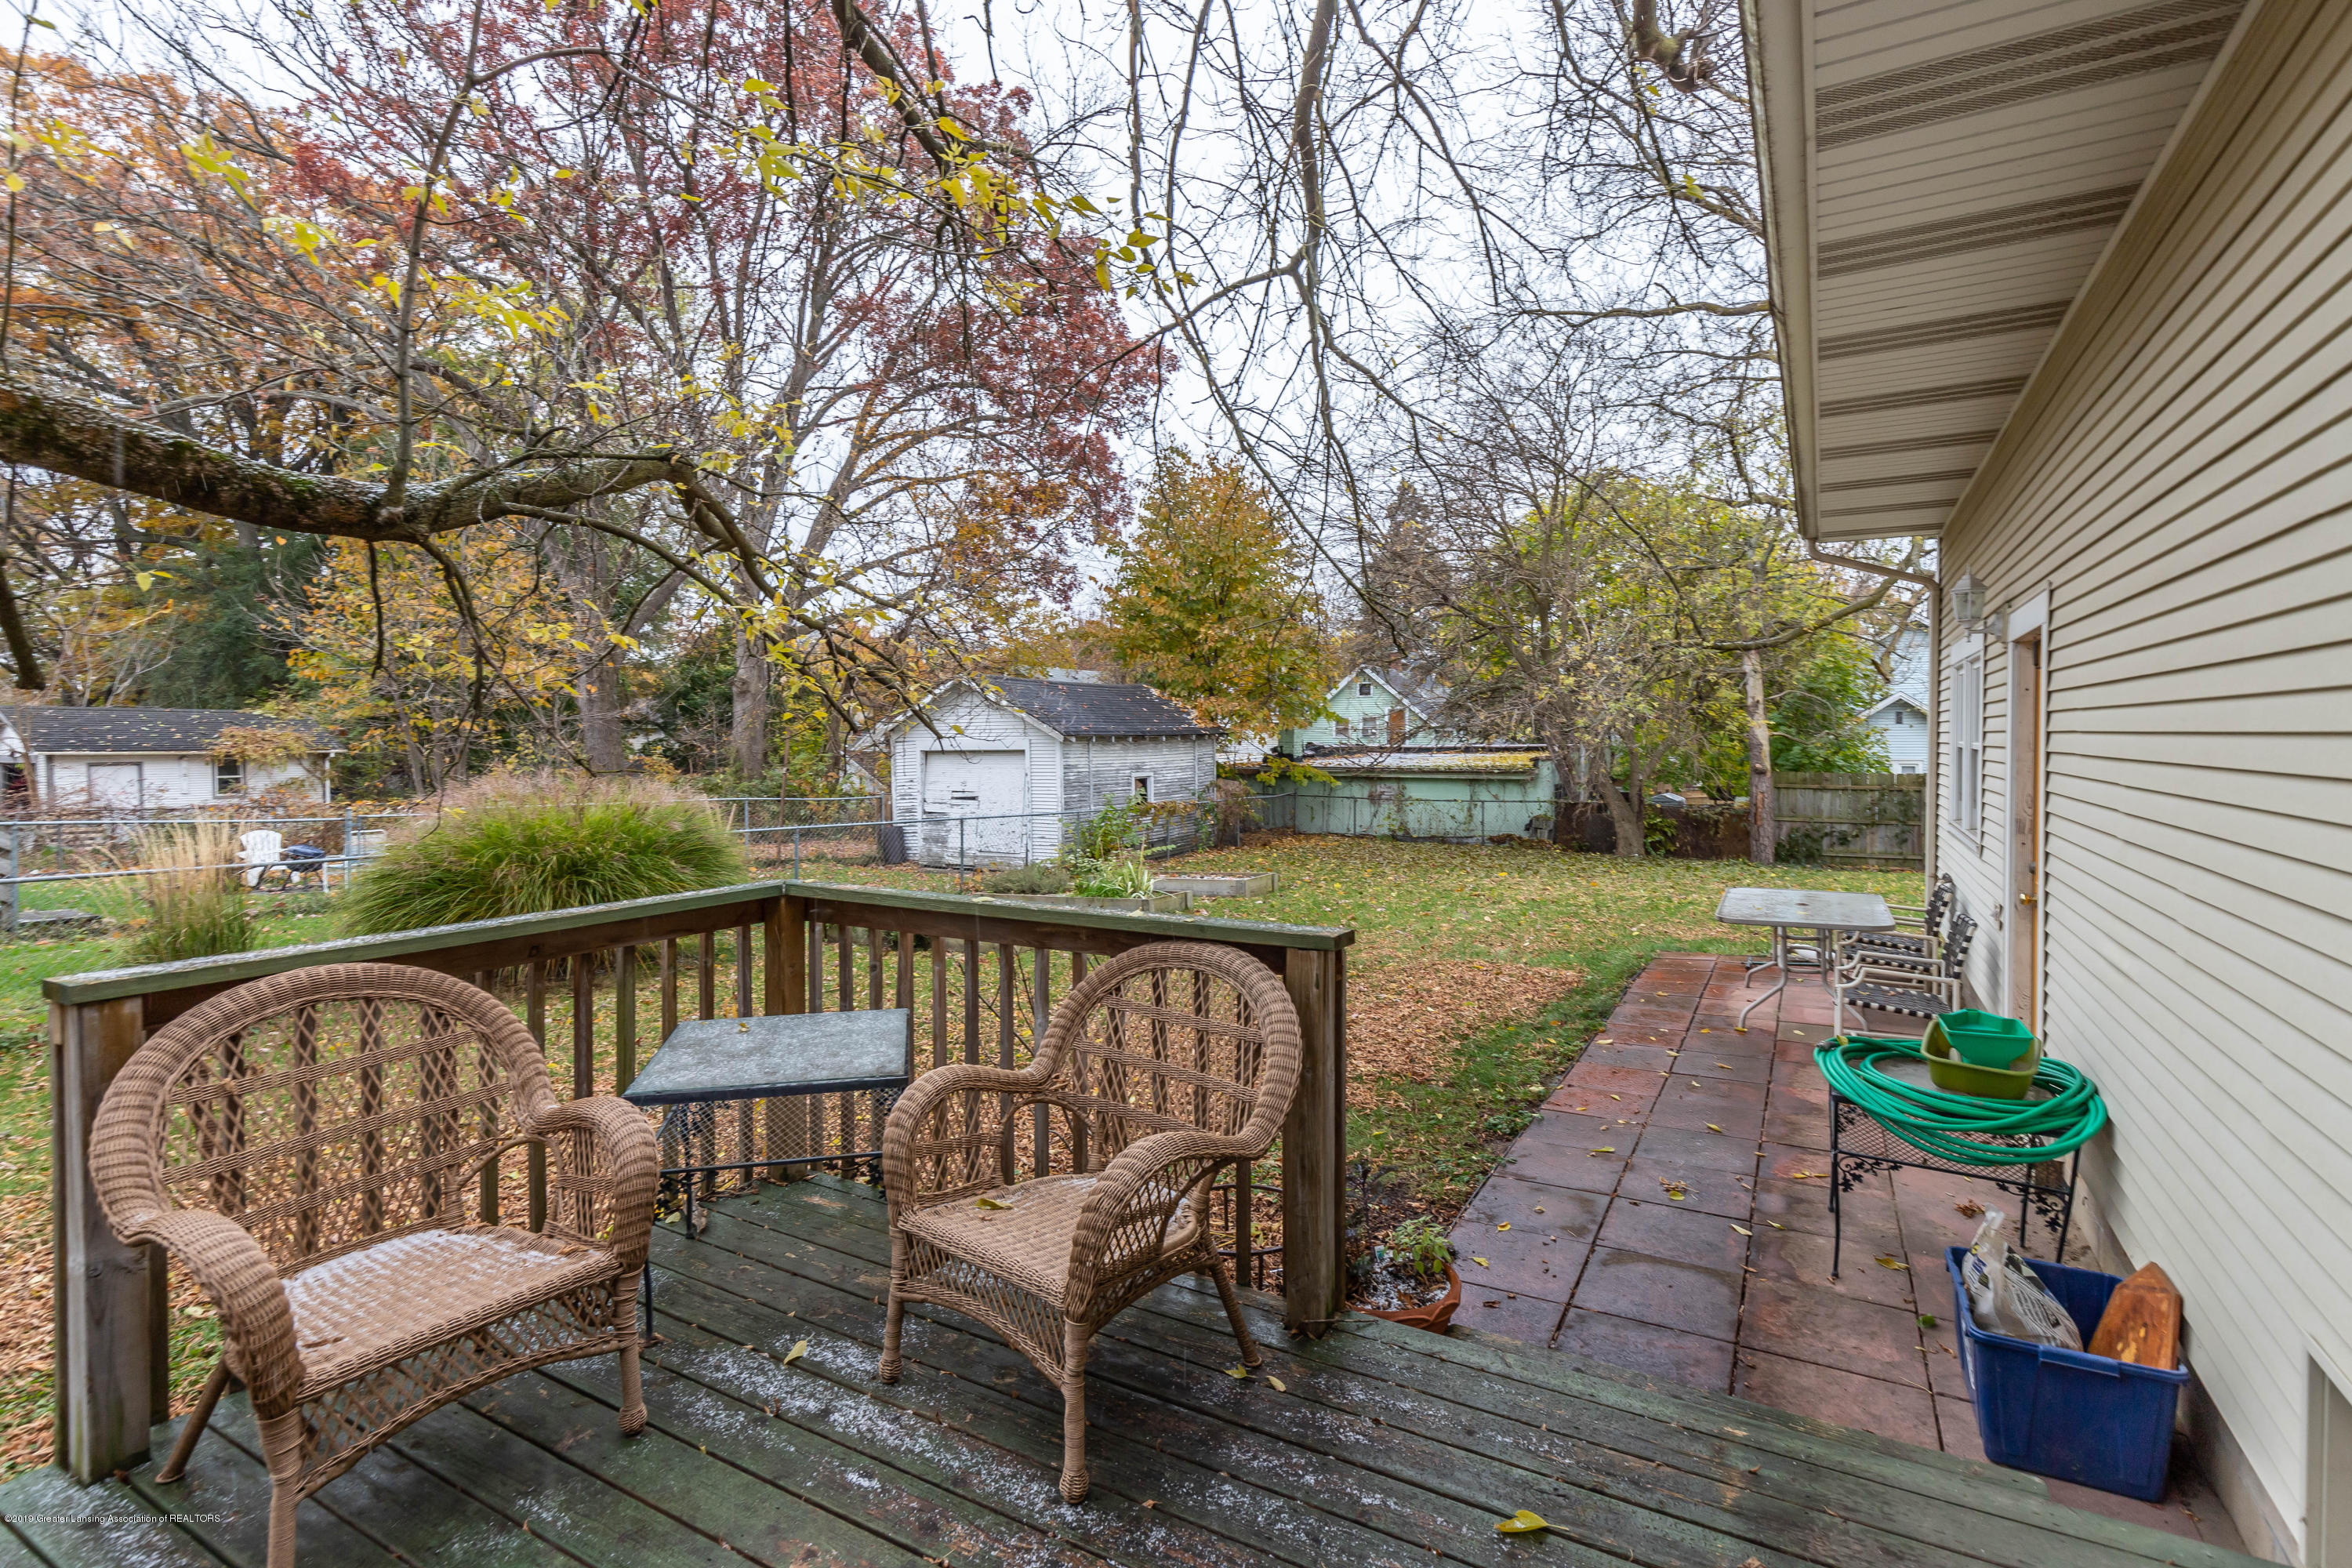 114 S Foster Ave - Deck/Patio - 30